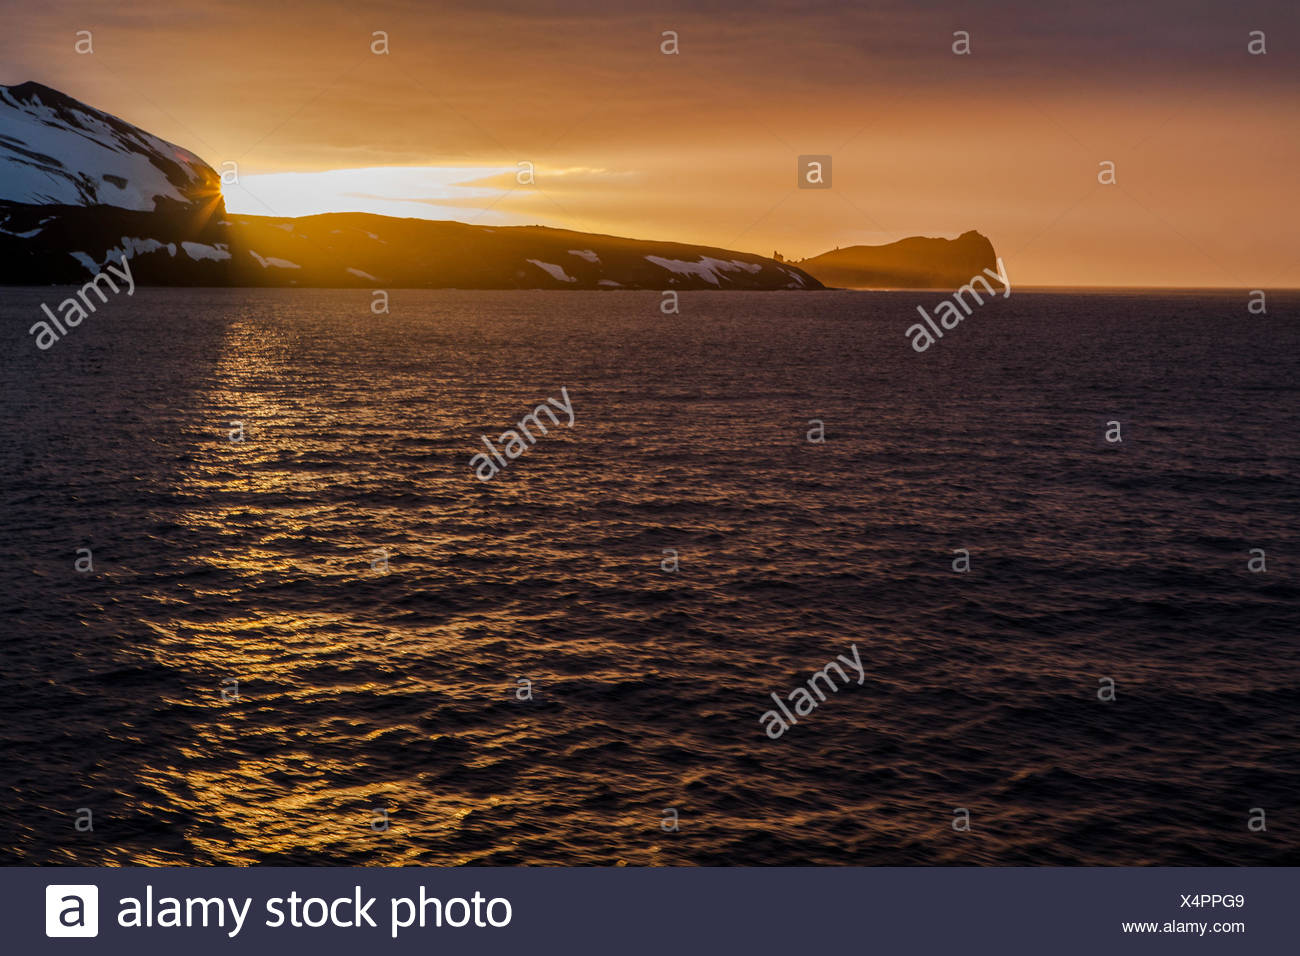 The sun sinks below the horizon at Deception Island. - Stock Image